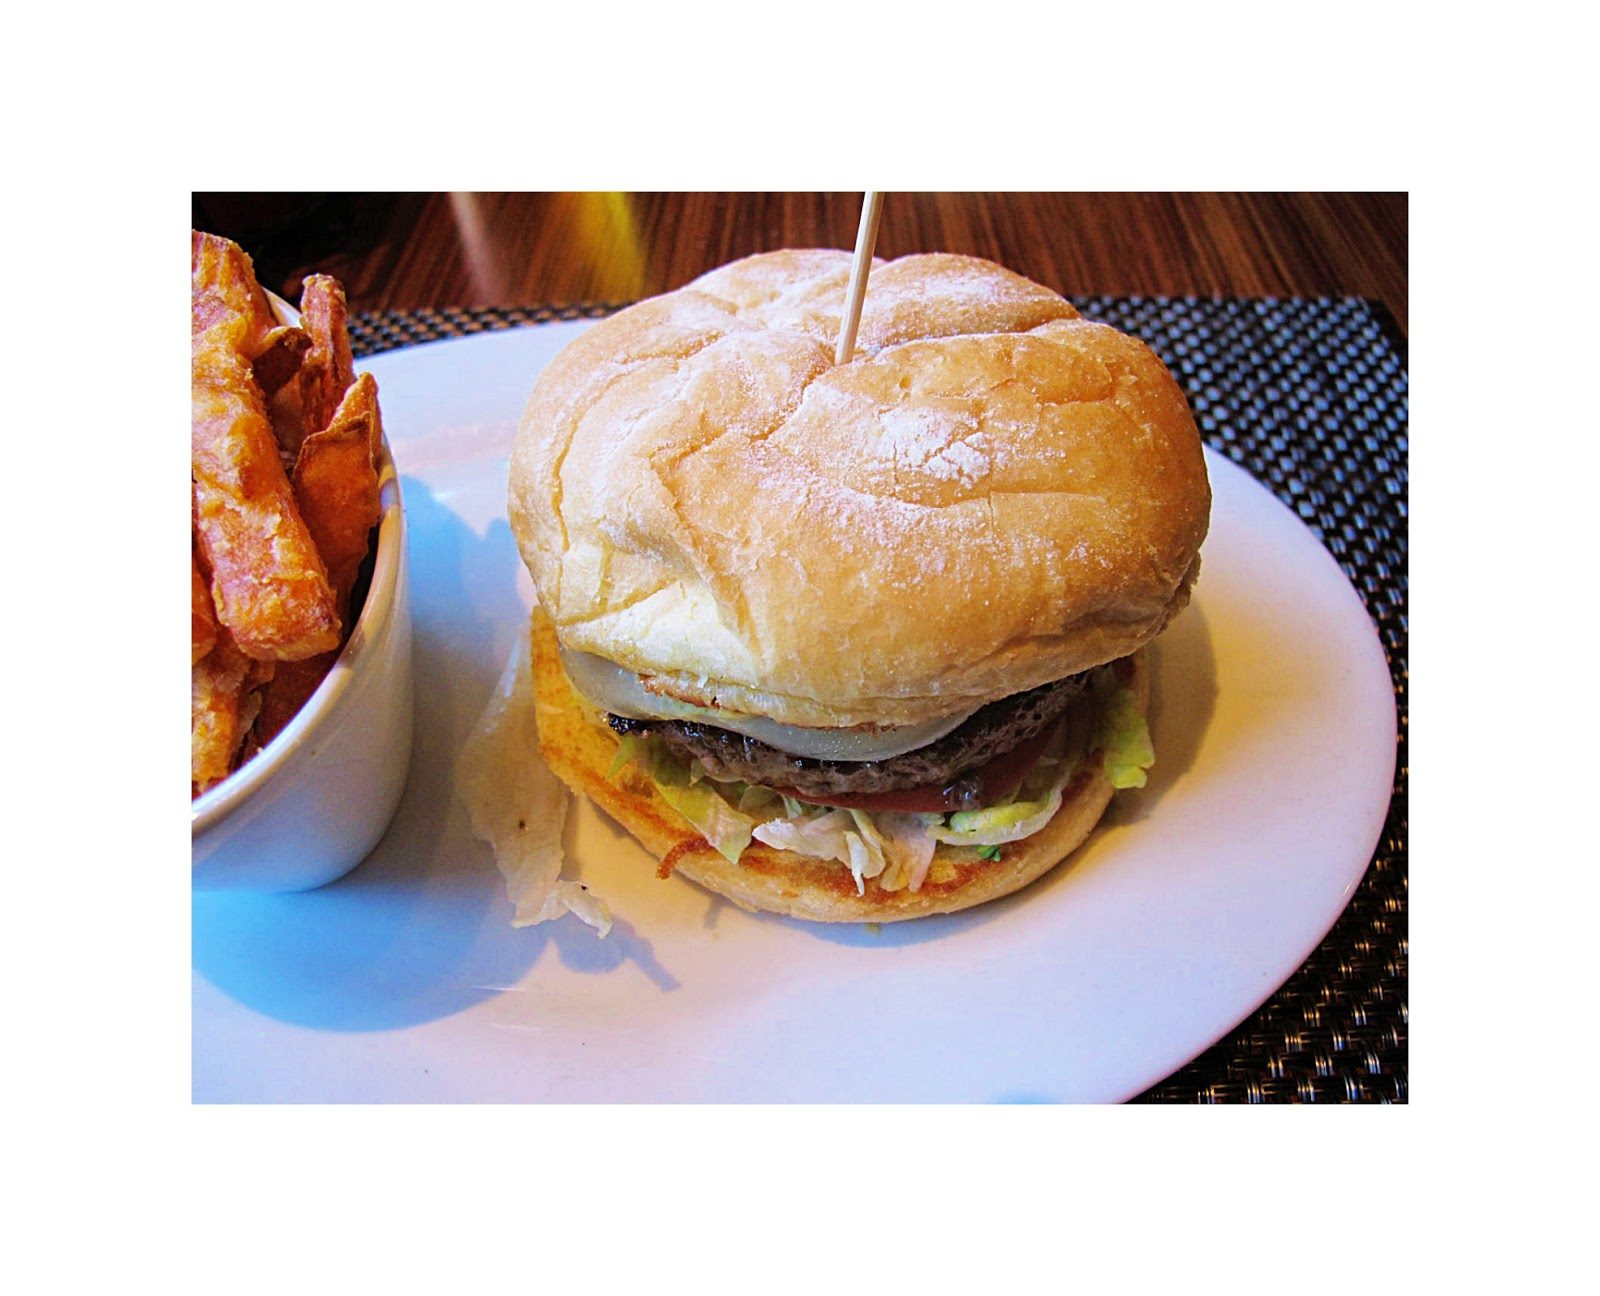 4ee15f2966ac5 Nigerian Hotel Restaurant Served Human Meat in there Hamburgers ...